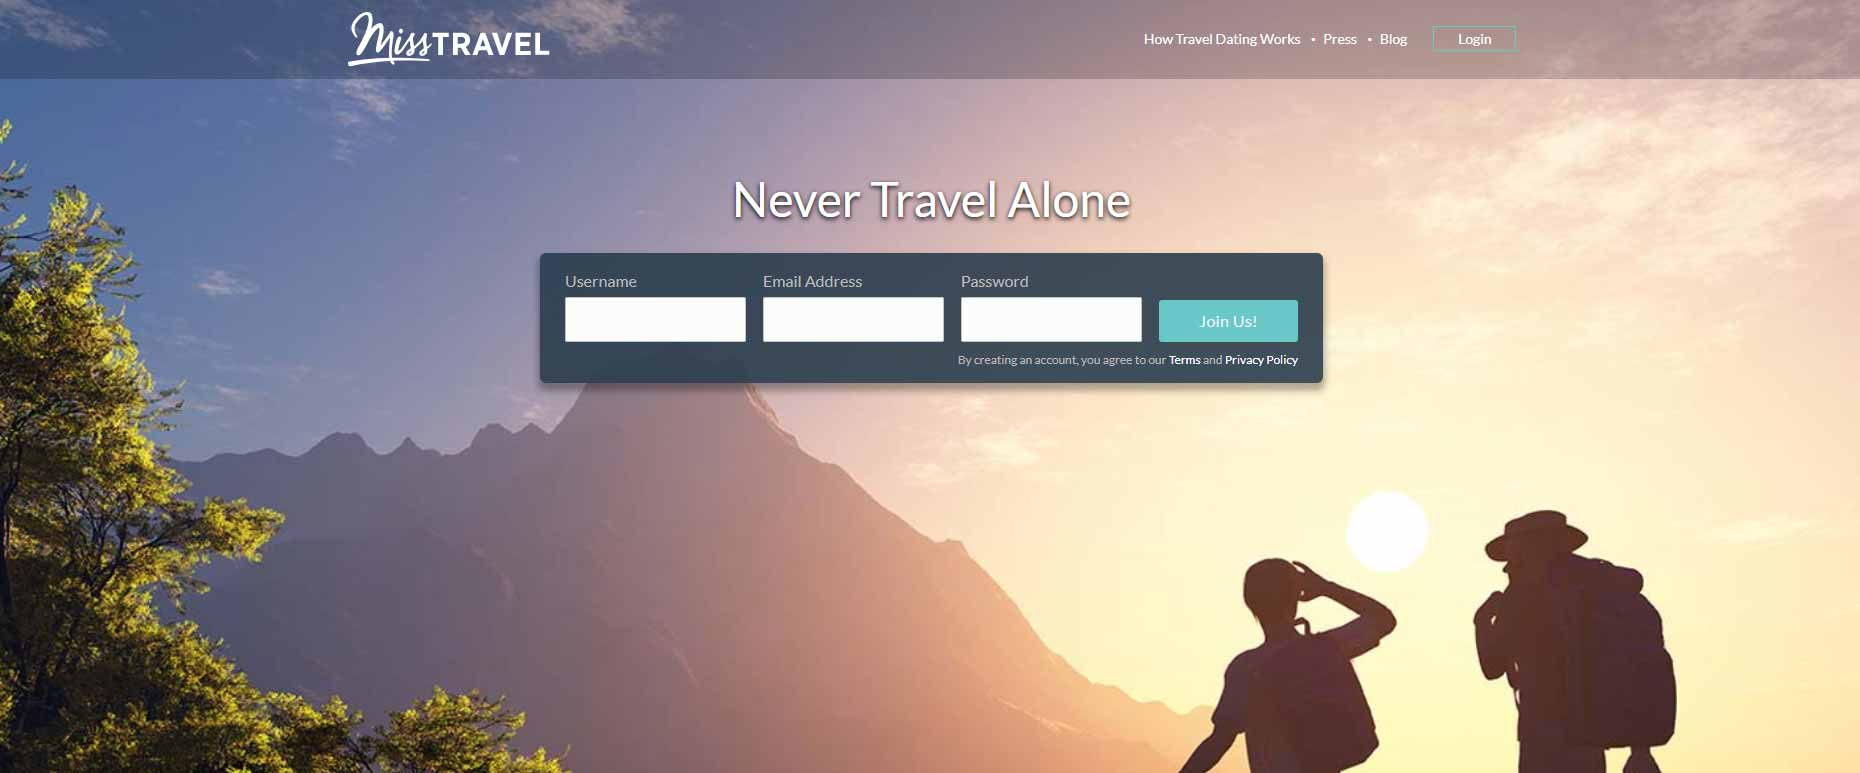 Miss Travel home page image for international travel and dating site review